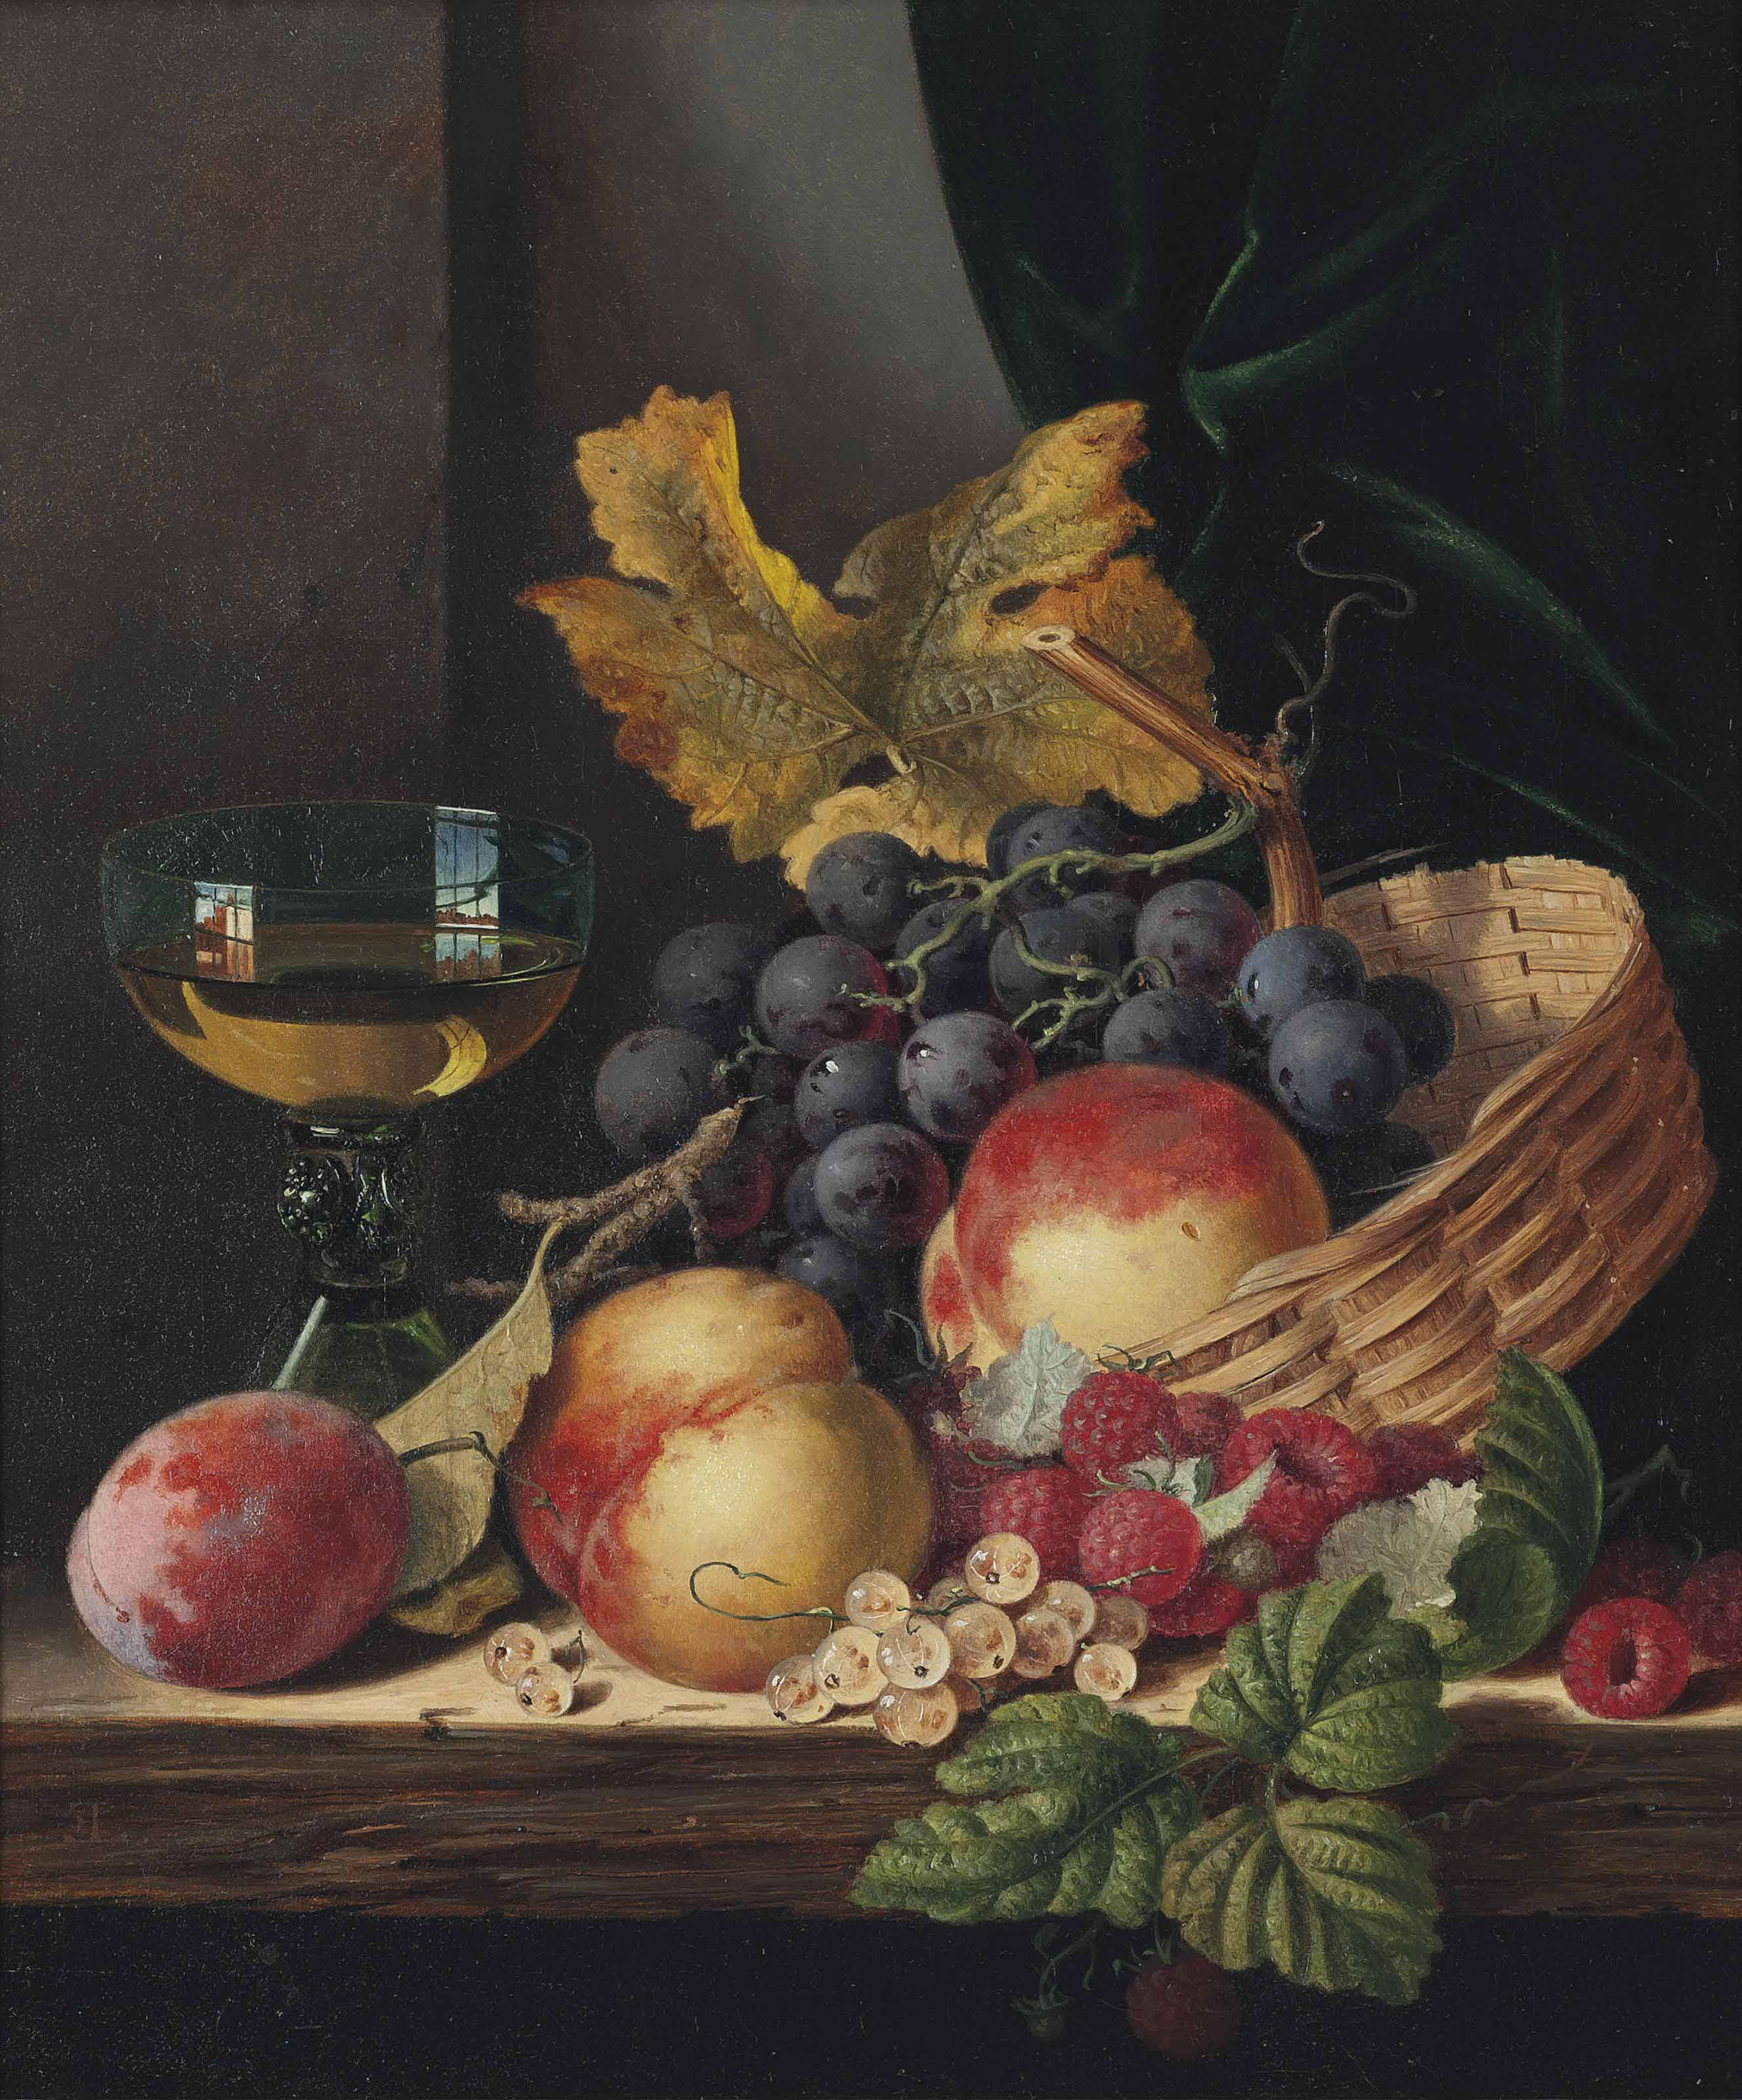 Peaches, plum, grapes, raspberries and white currants on a wooden ledge, with a wine glass